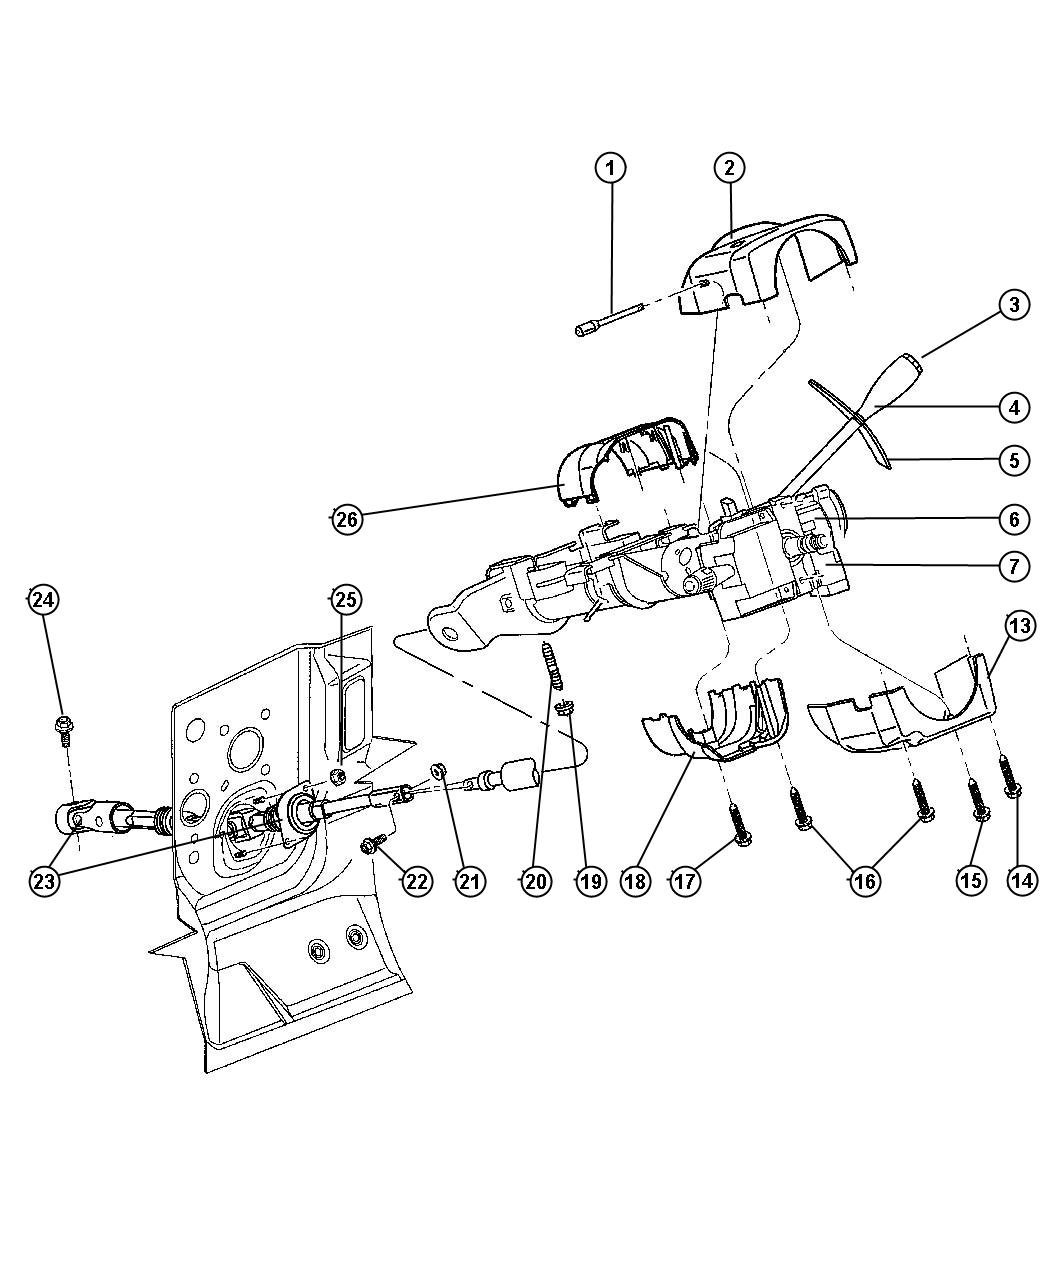 Dodge Dakota Steering Diagram